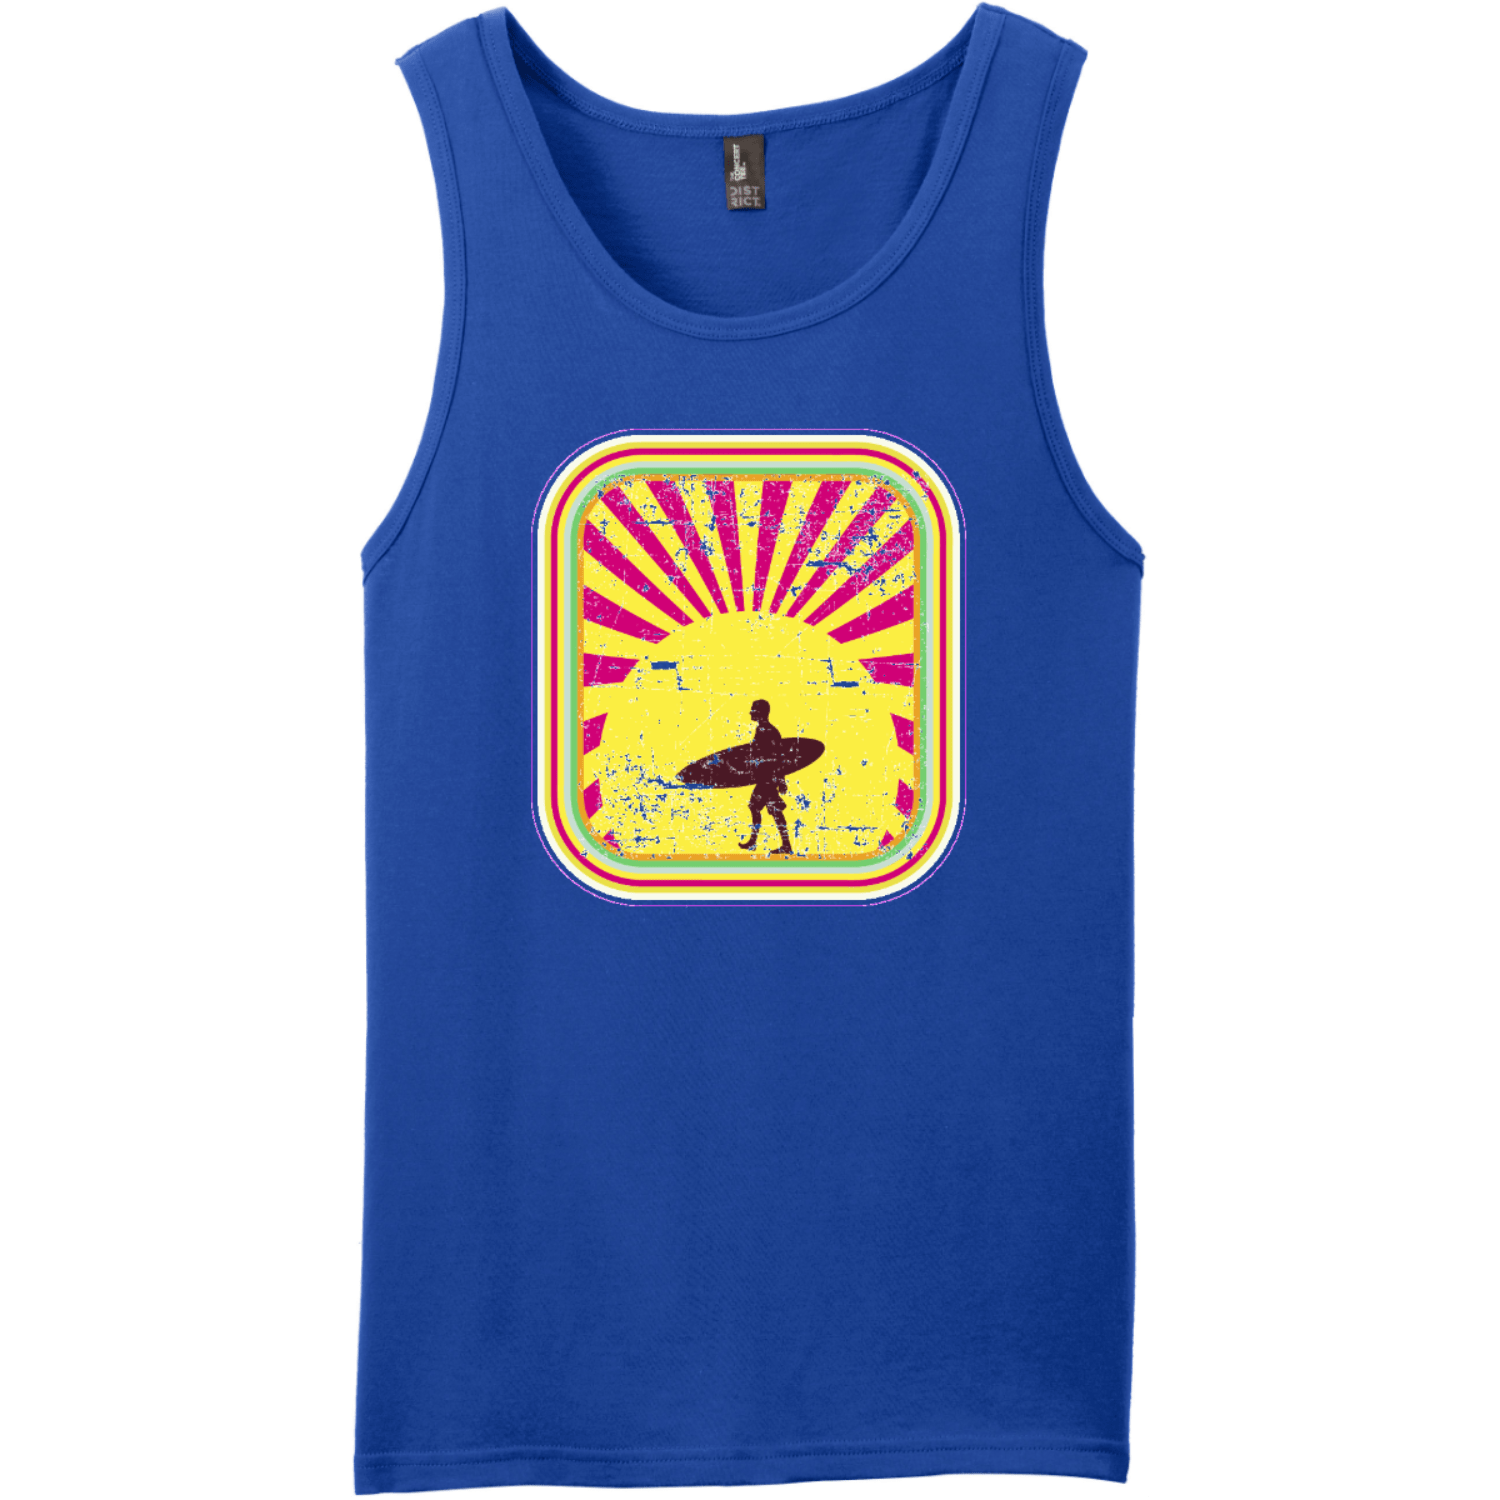 Surfer In The Retro Sunset Tank Top Deep Royal District Concert Tank Top DT5300